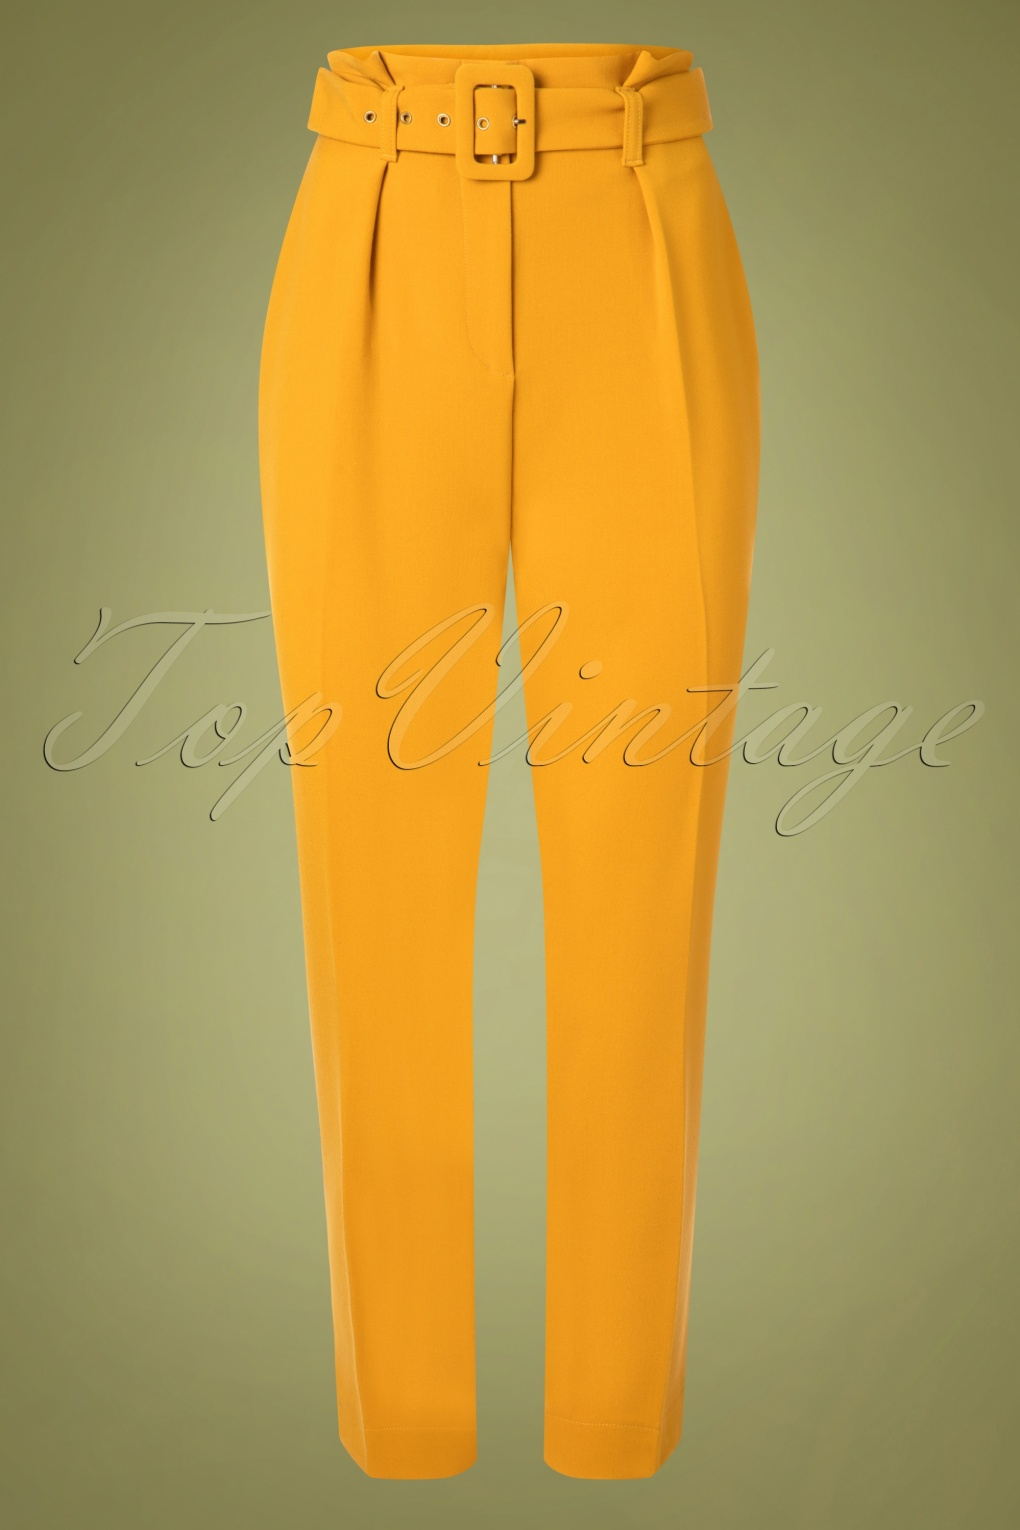 60s – 70s Pants, Jeans, Hippie, Bell Bottoms, Jumpsuits 60s Dorris Trousers in Mustard Yellow £65.30 AT vintagedancer.com